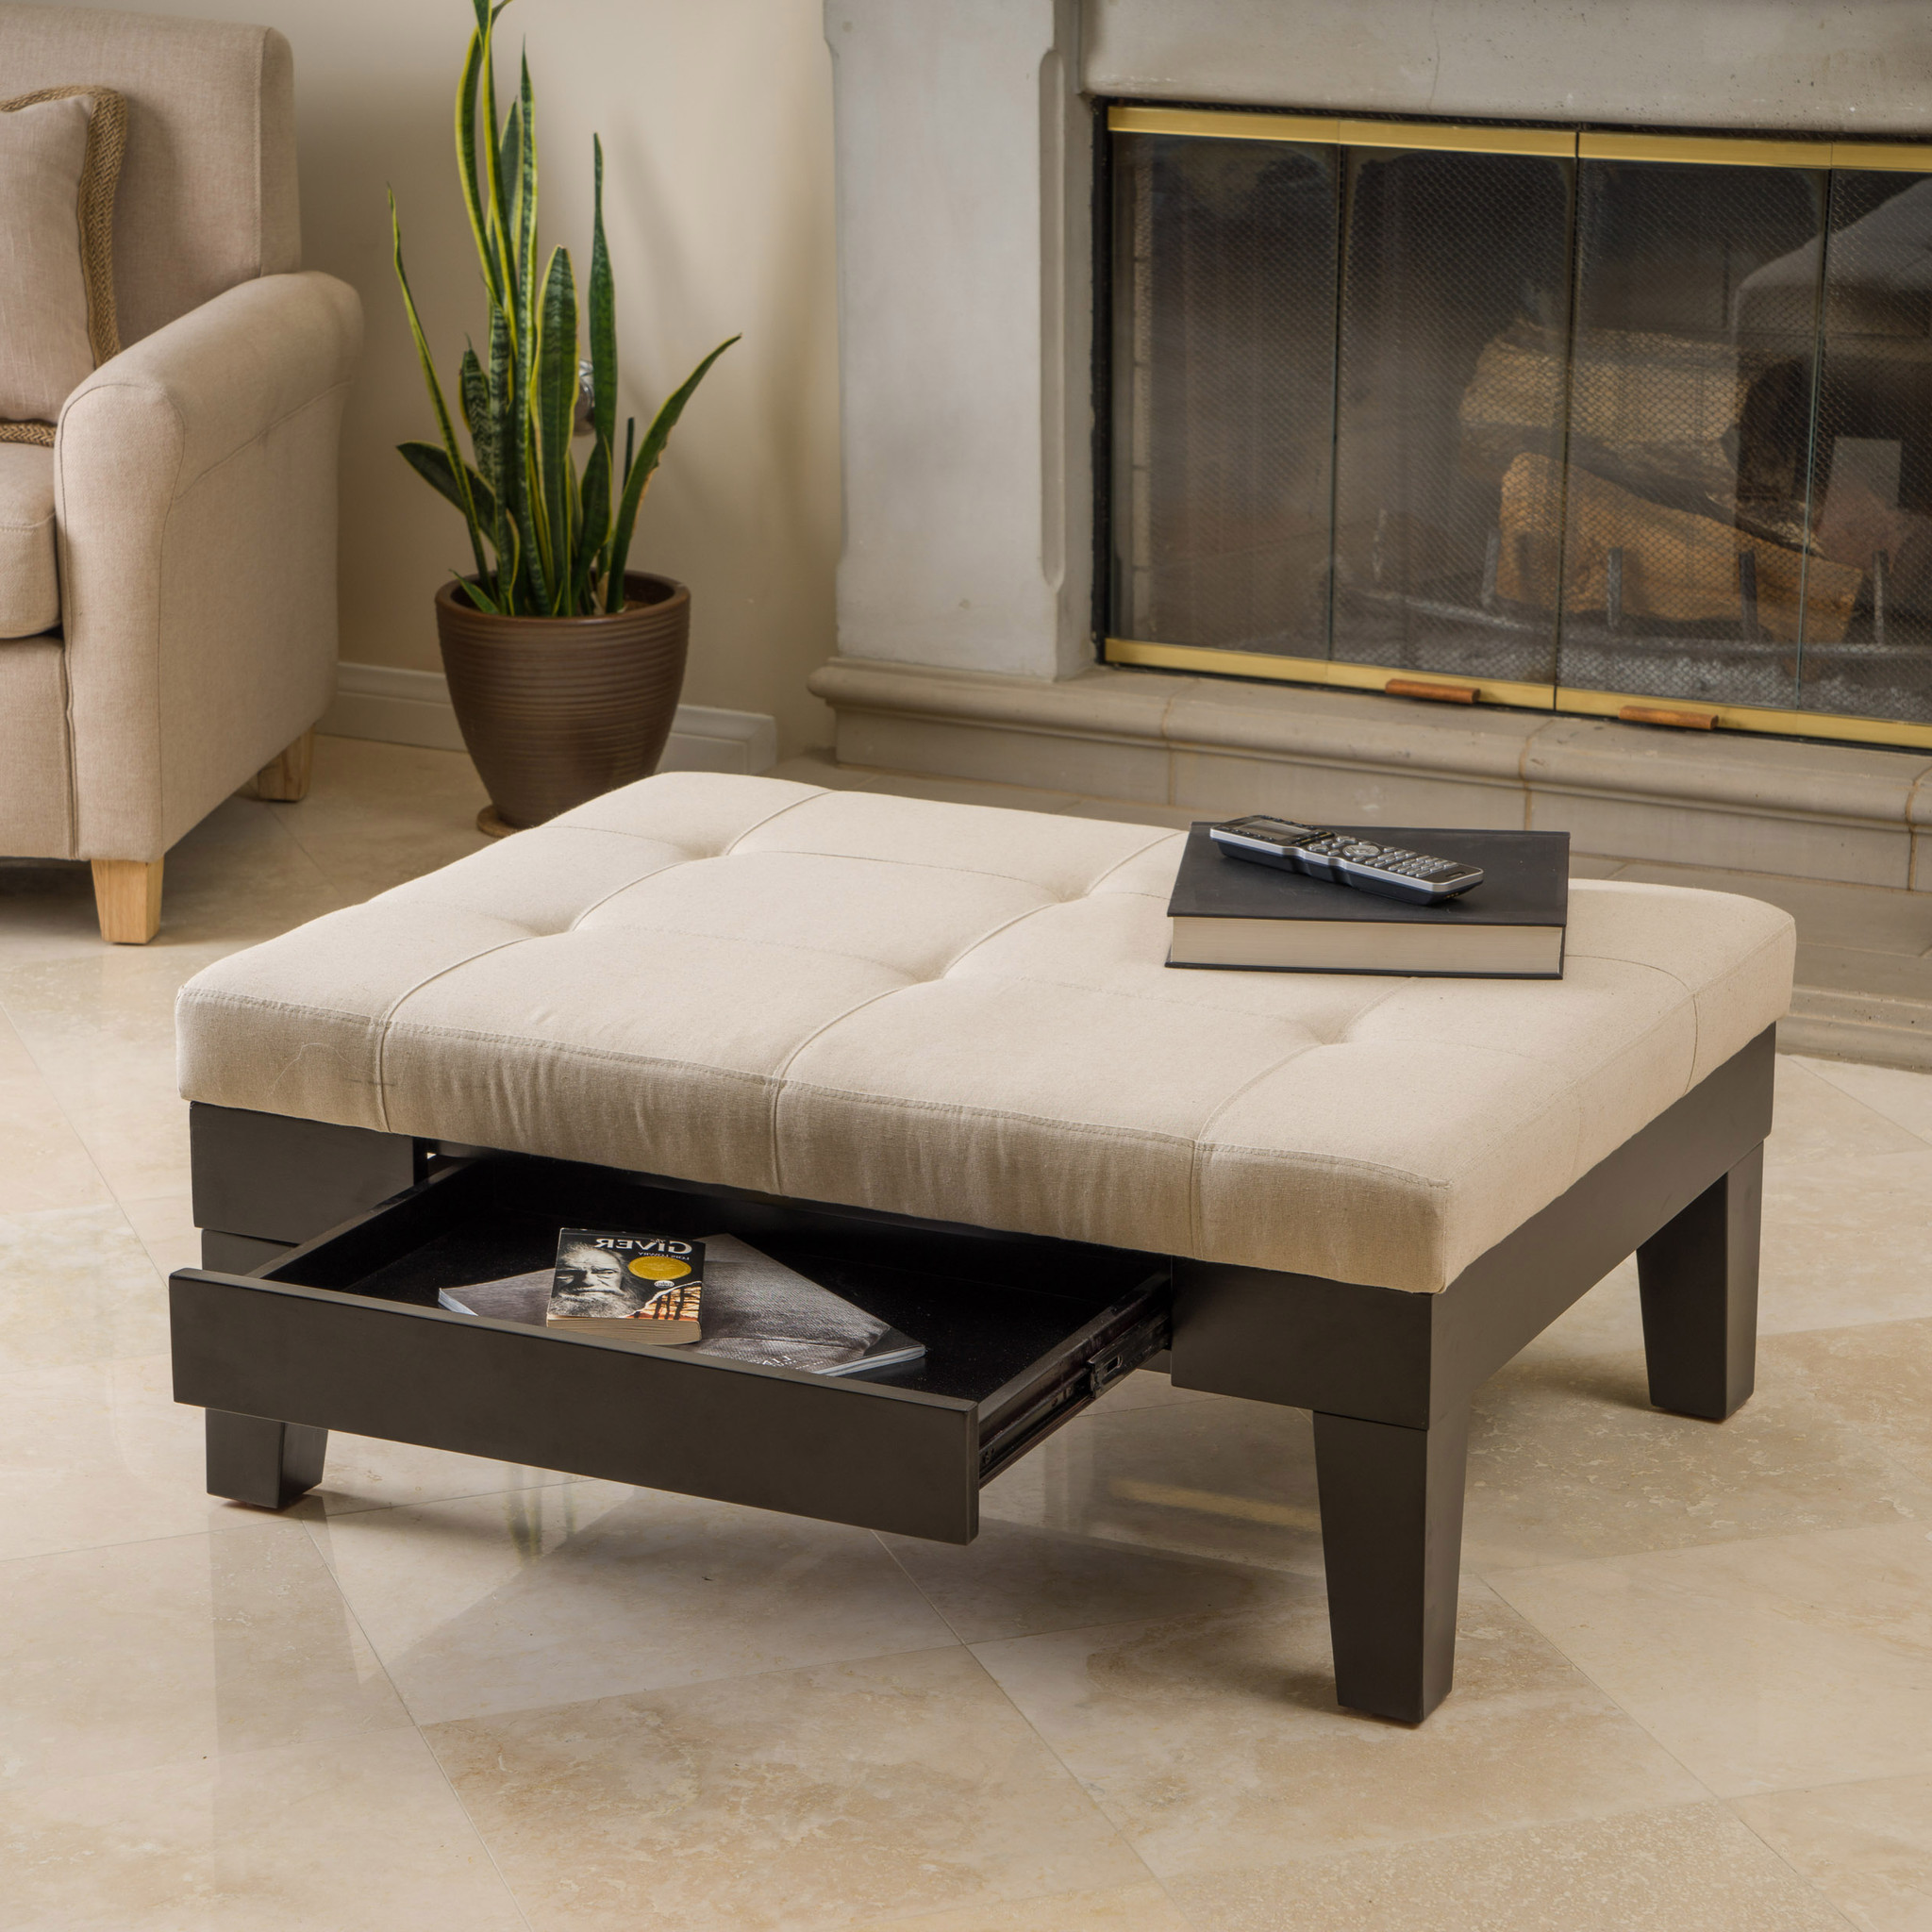 External Home Design Interior: Cushion Coffee Table With Storage Furniture